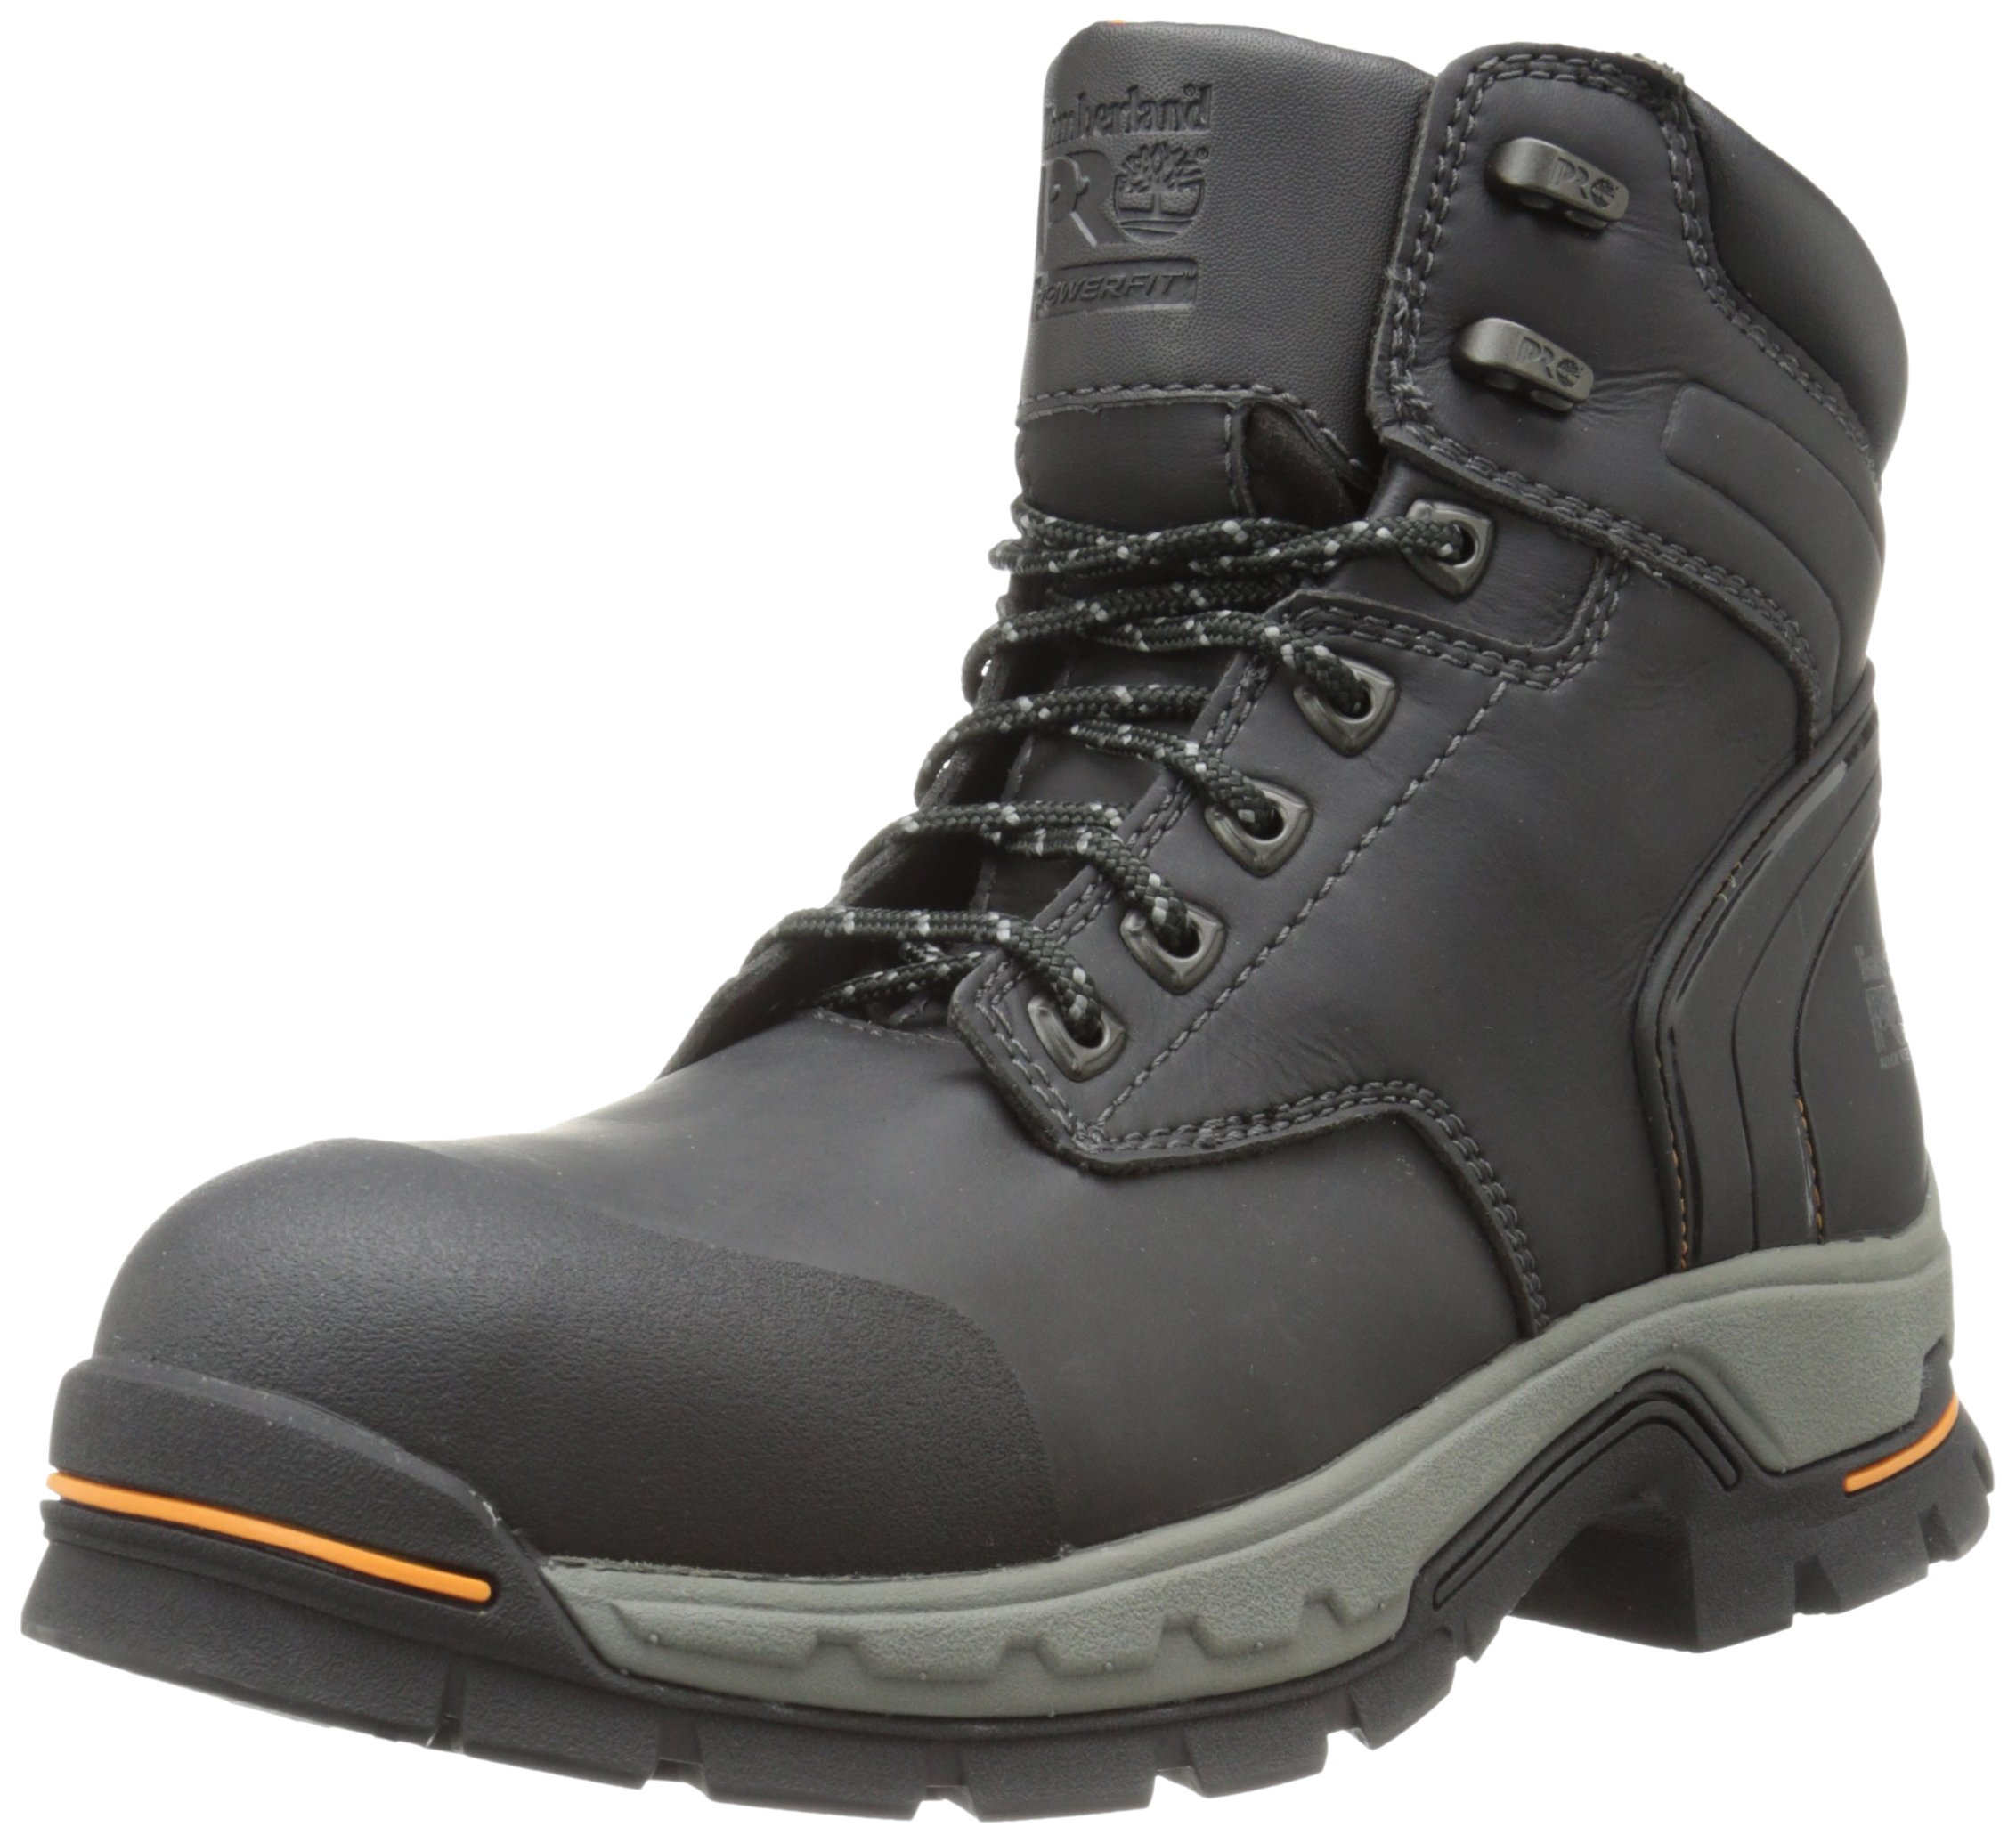 Timberland PRO Men's 6 Inch Stockdale Grip Max Alloy Toe Work and Hunt Boot, Black Microfiber, 4.5 M US by Timberland PRO